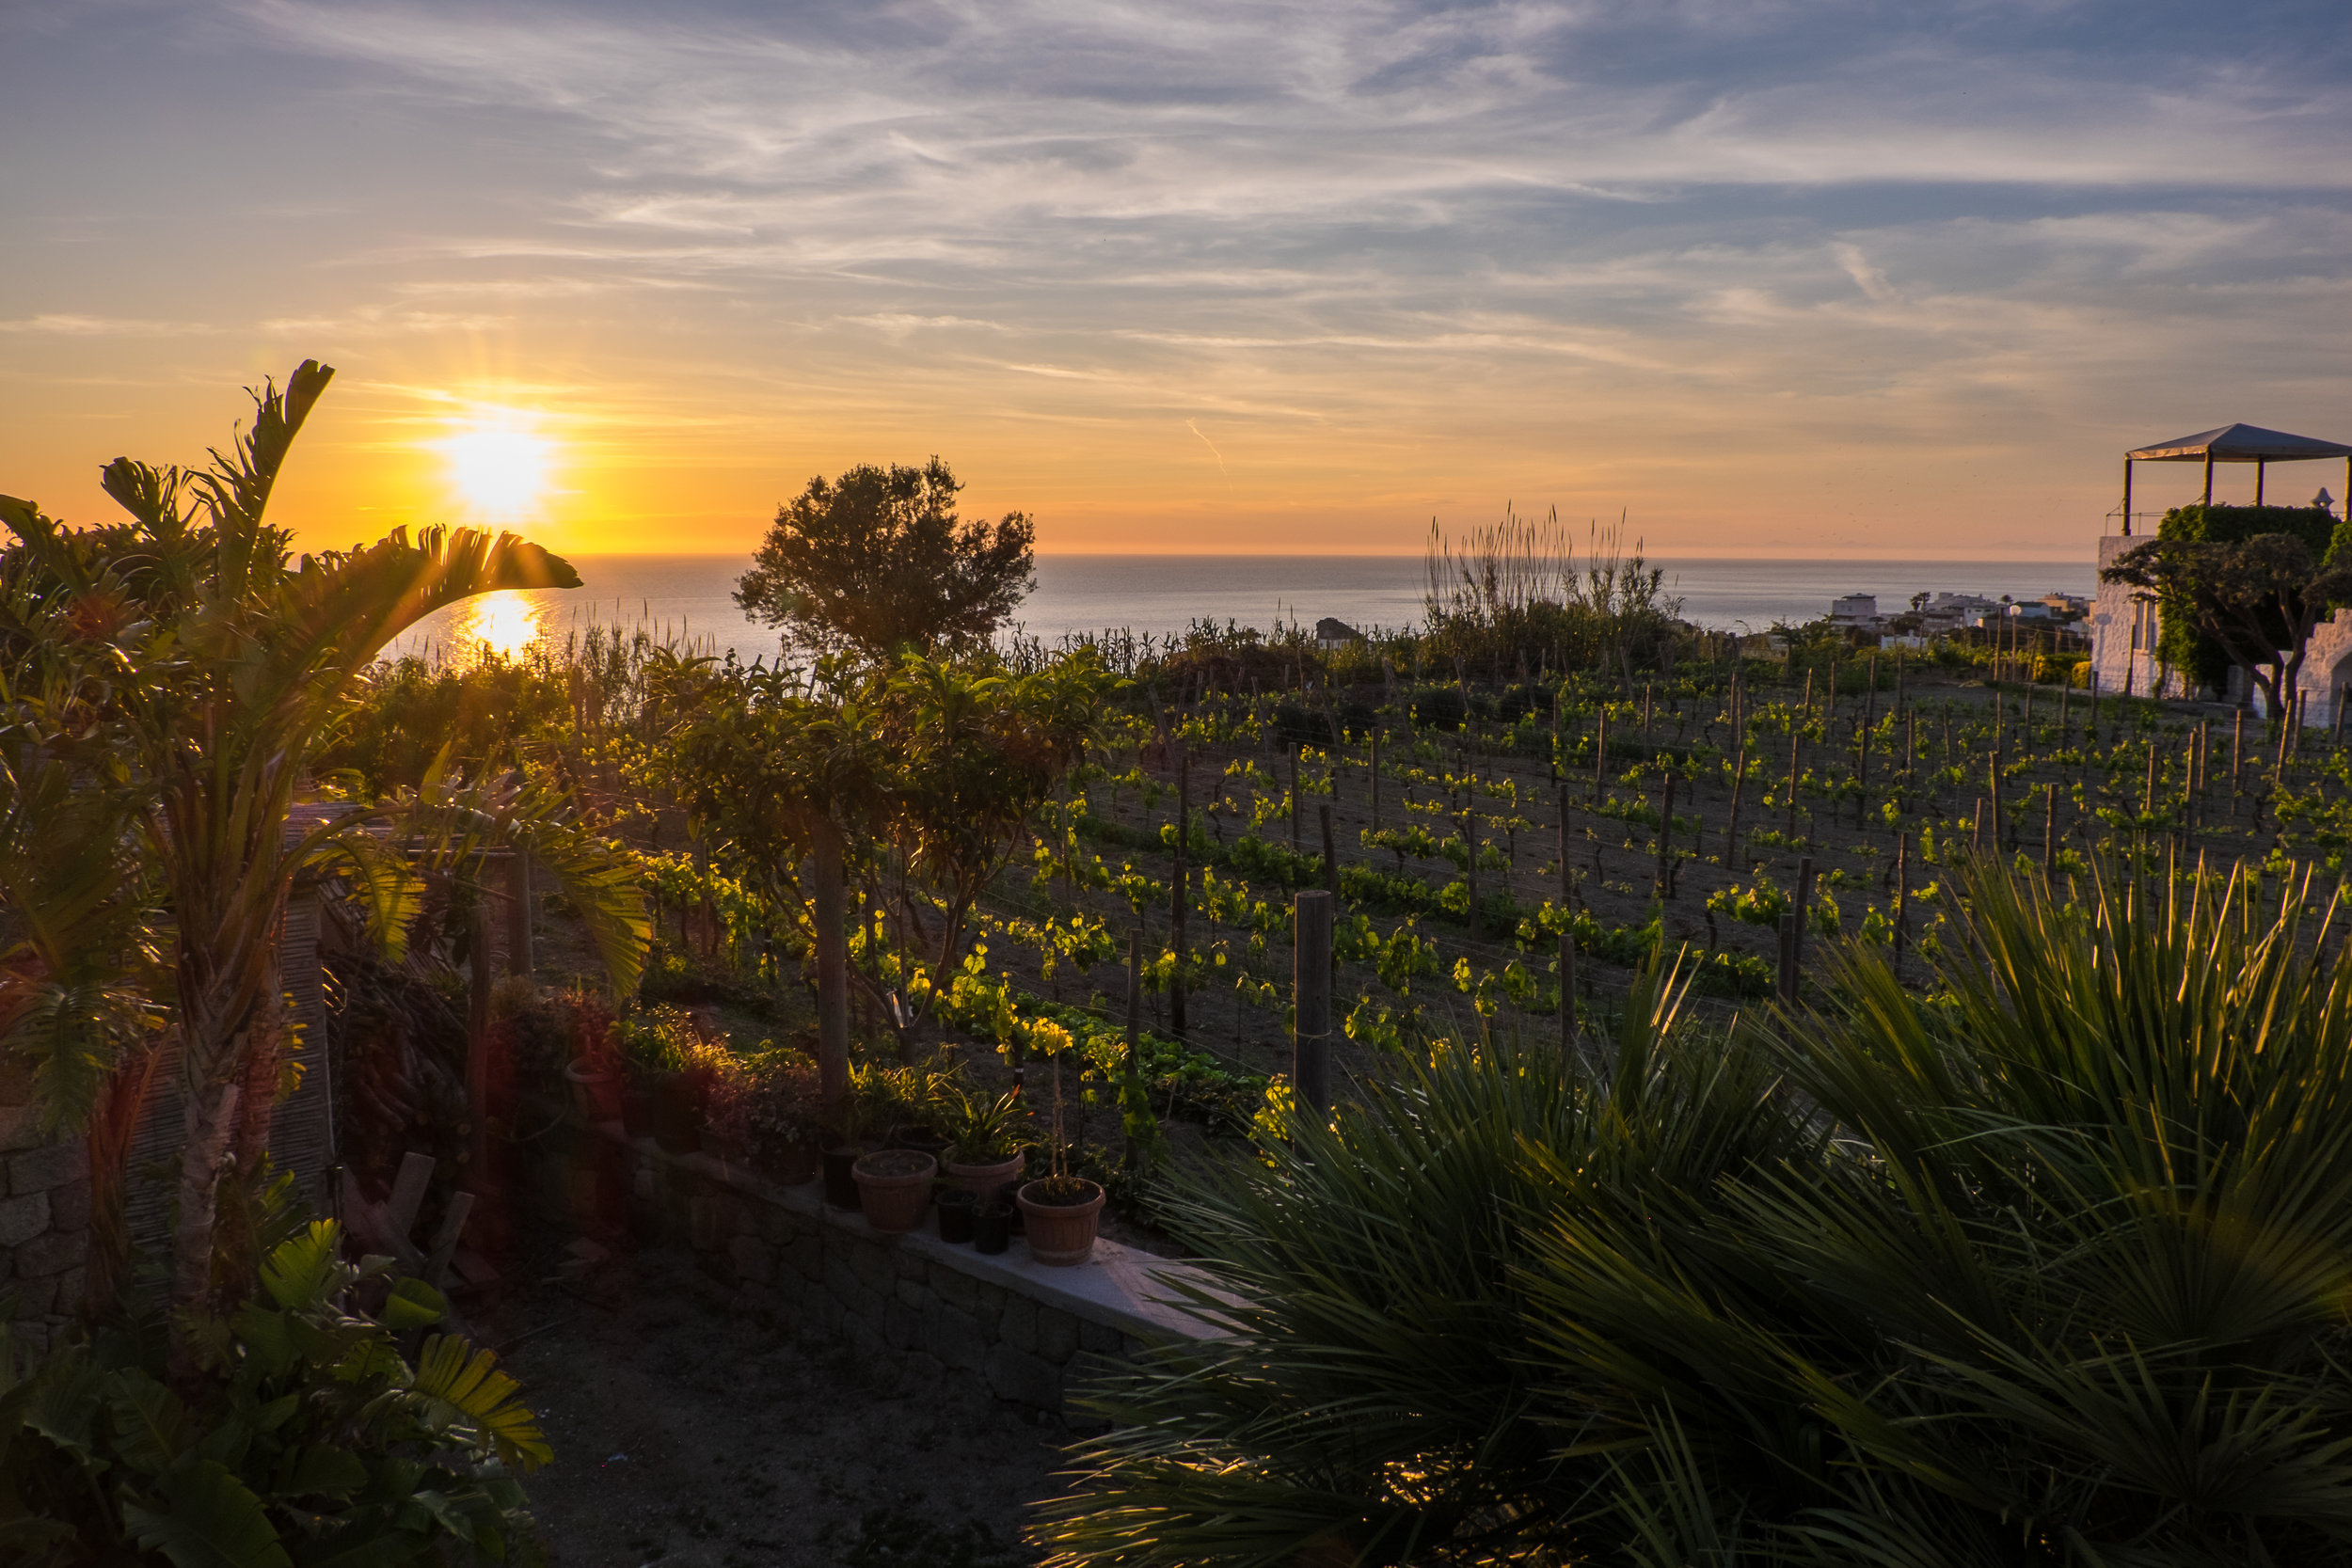 Sunset over vines, Ischia|  ©John Szabo (published by Jacqui Small)